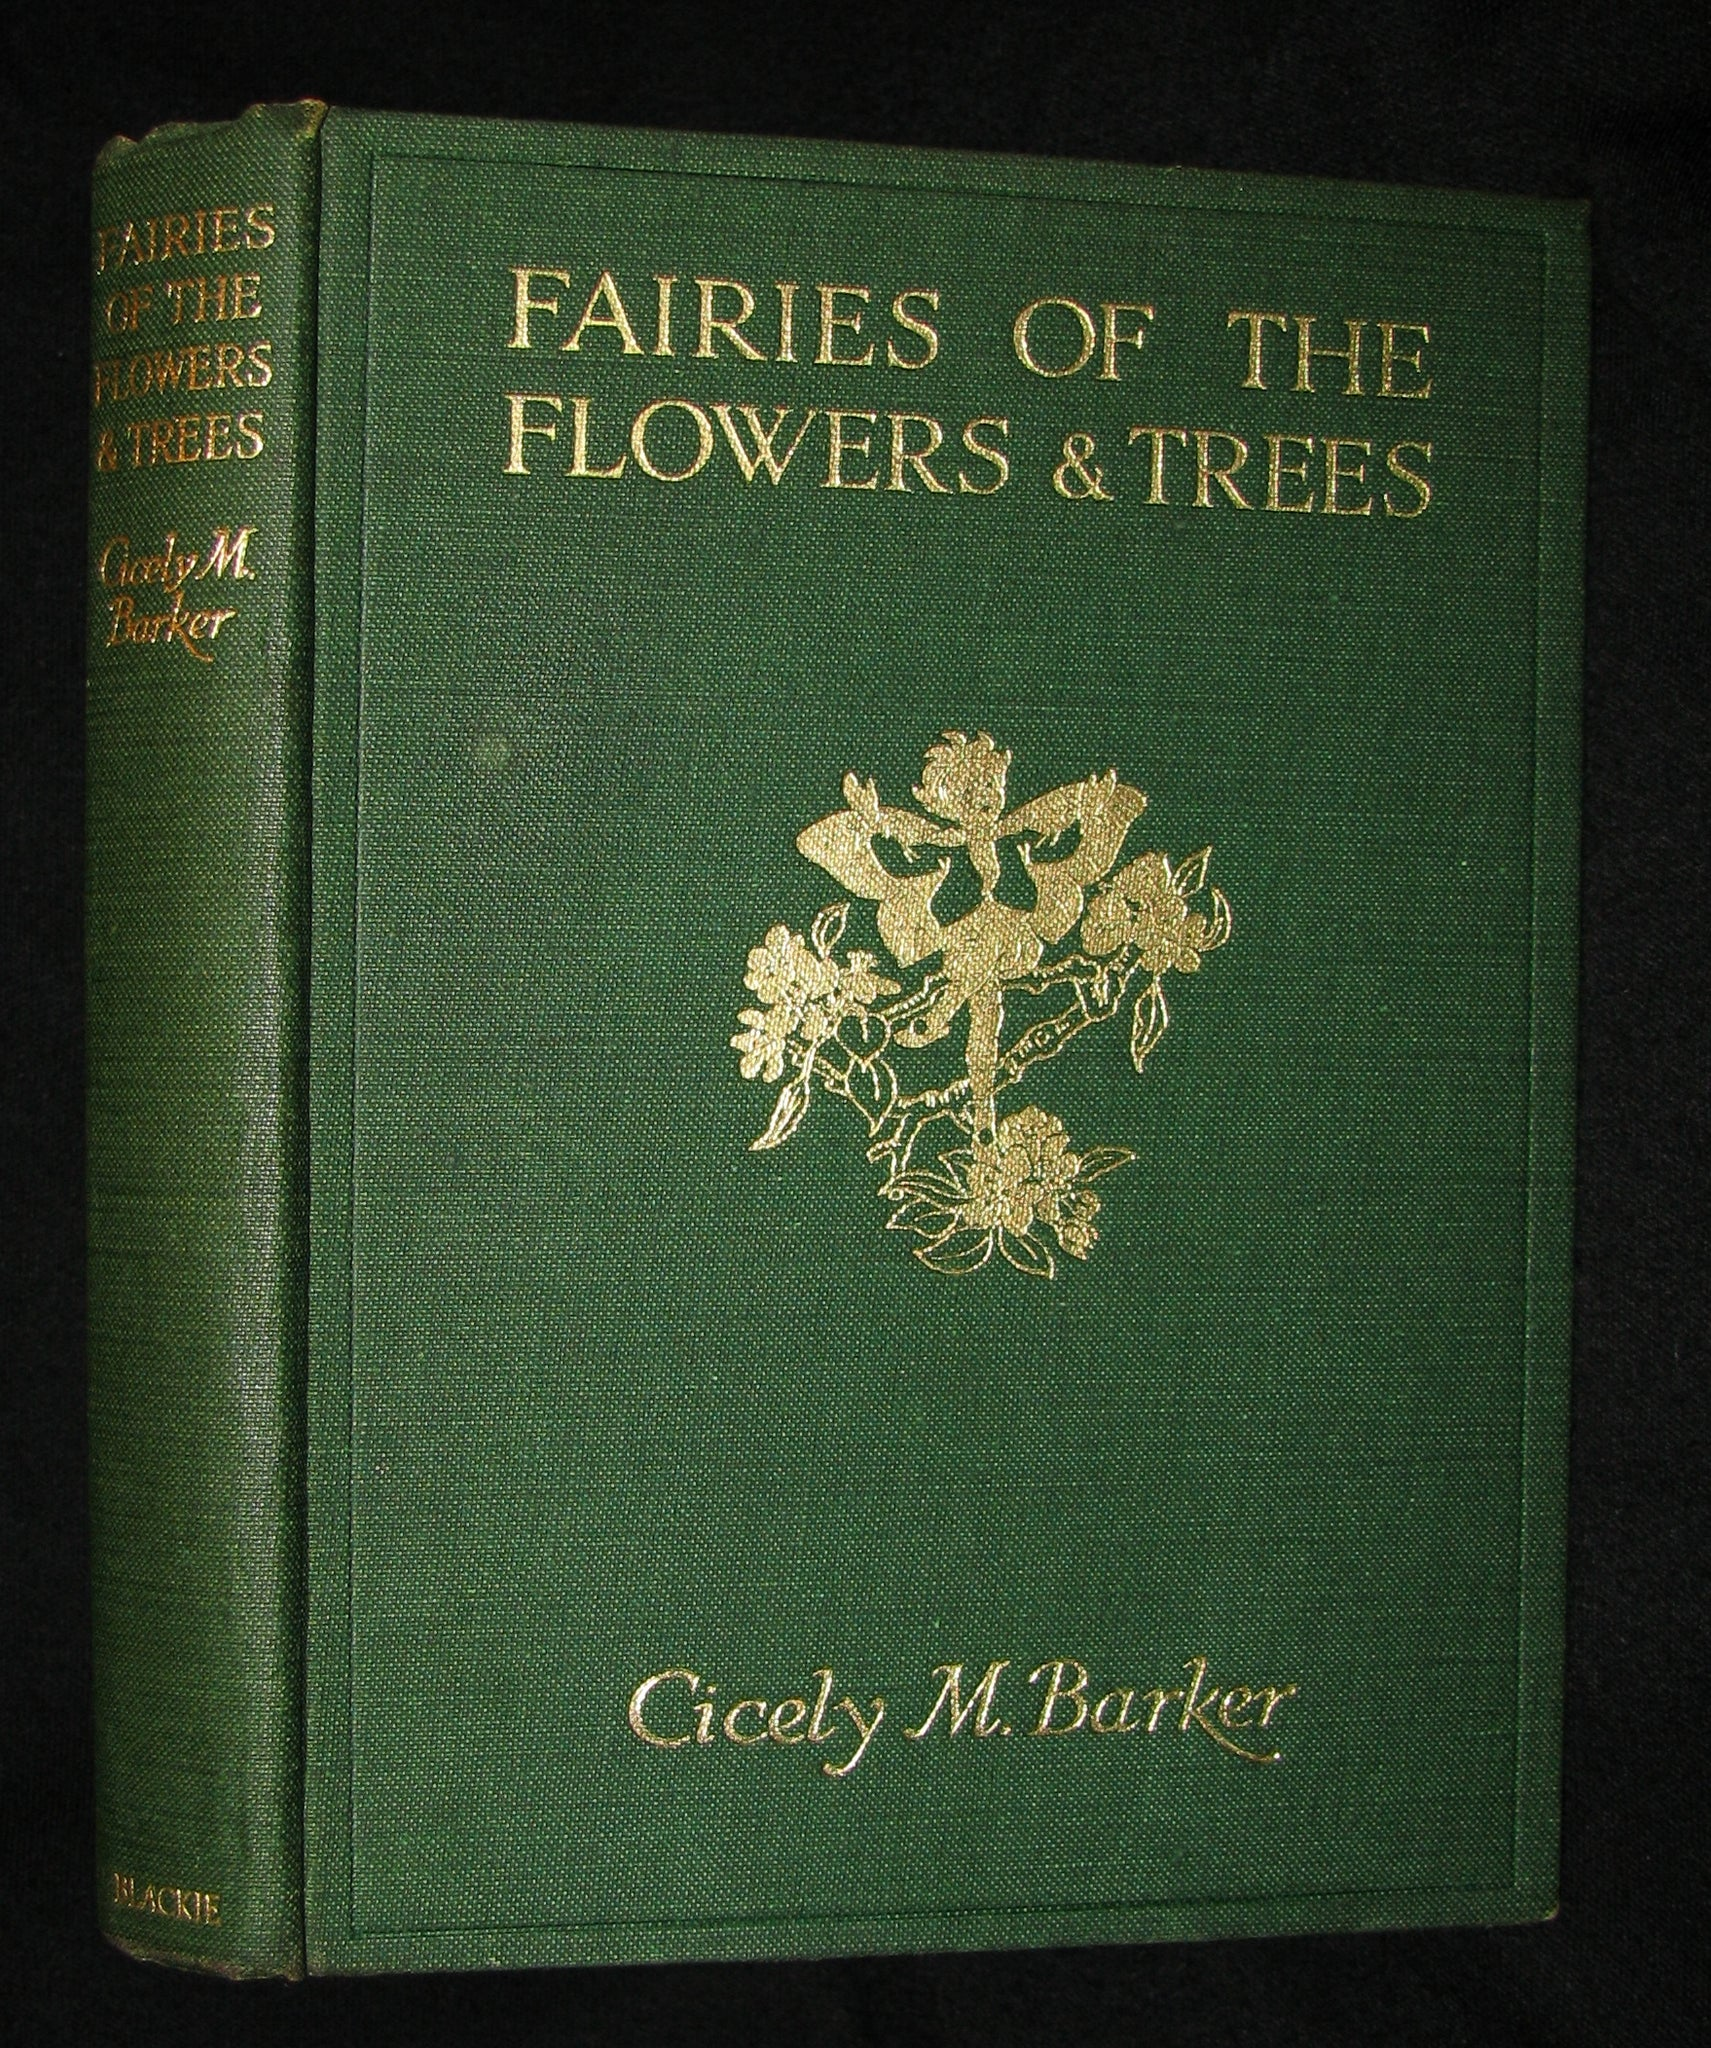 1950 - Cicely Mary Barker - FAIRIES OF THE FLOWERS AND TREES - 1stED